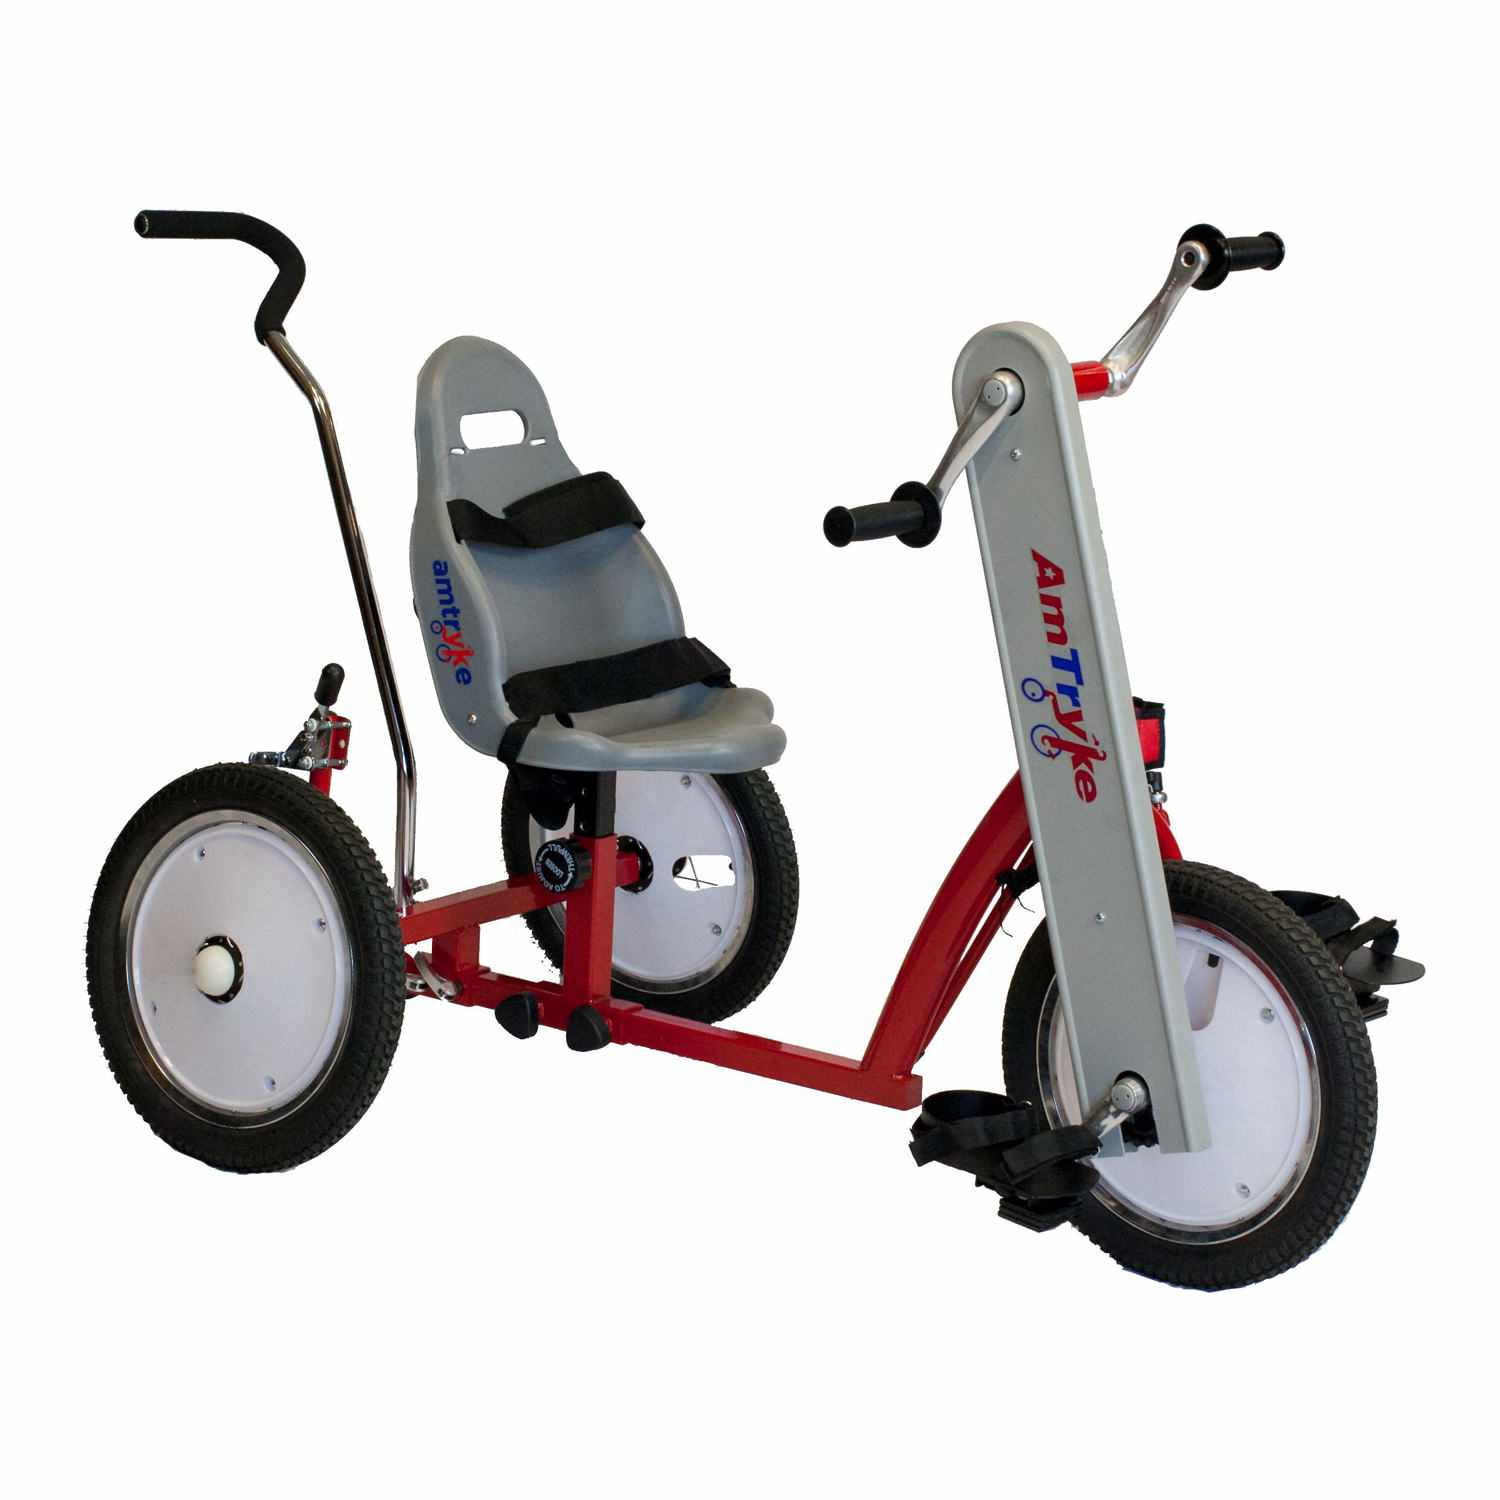 Amtryke AM-12 tricycle with bucket seat